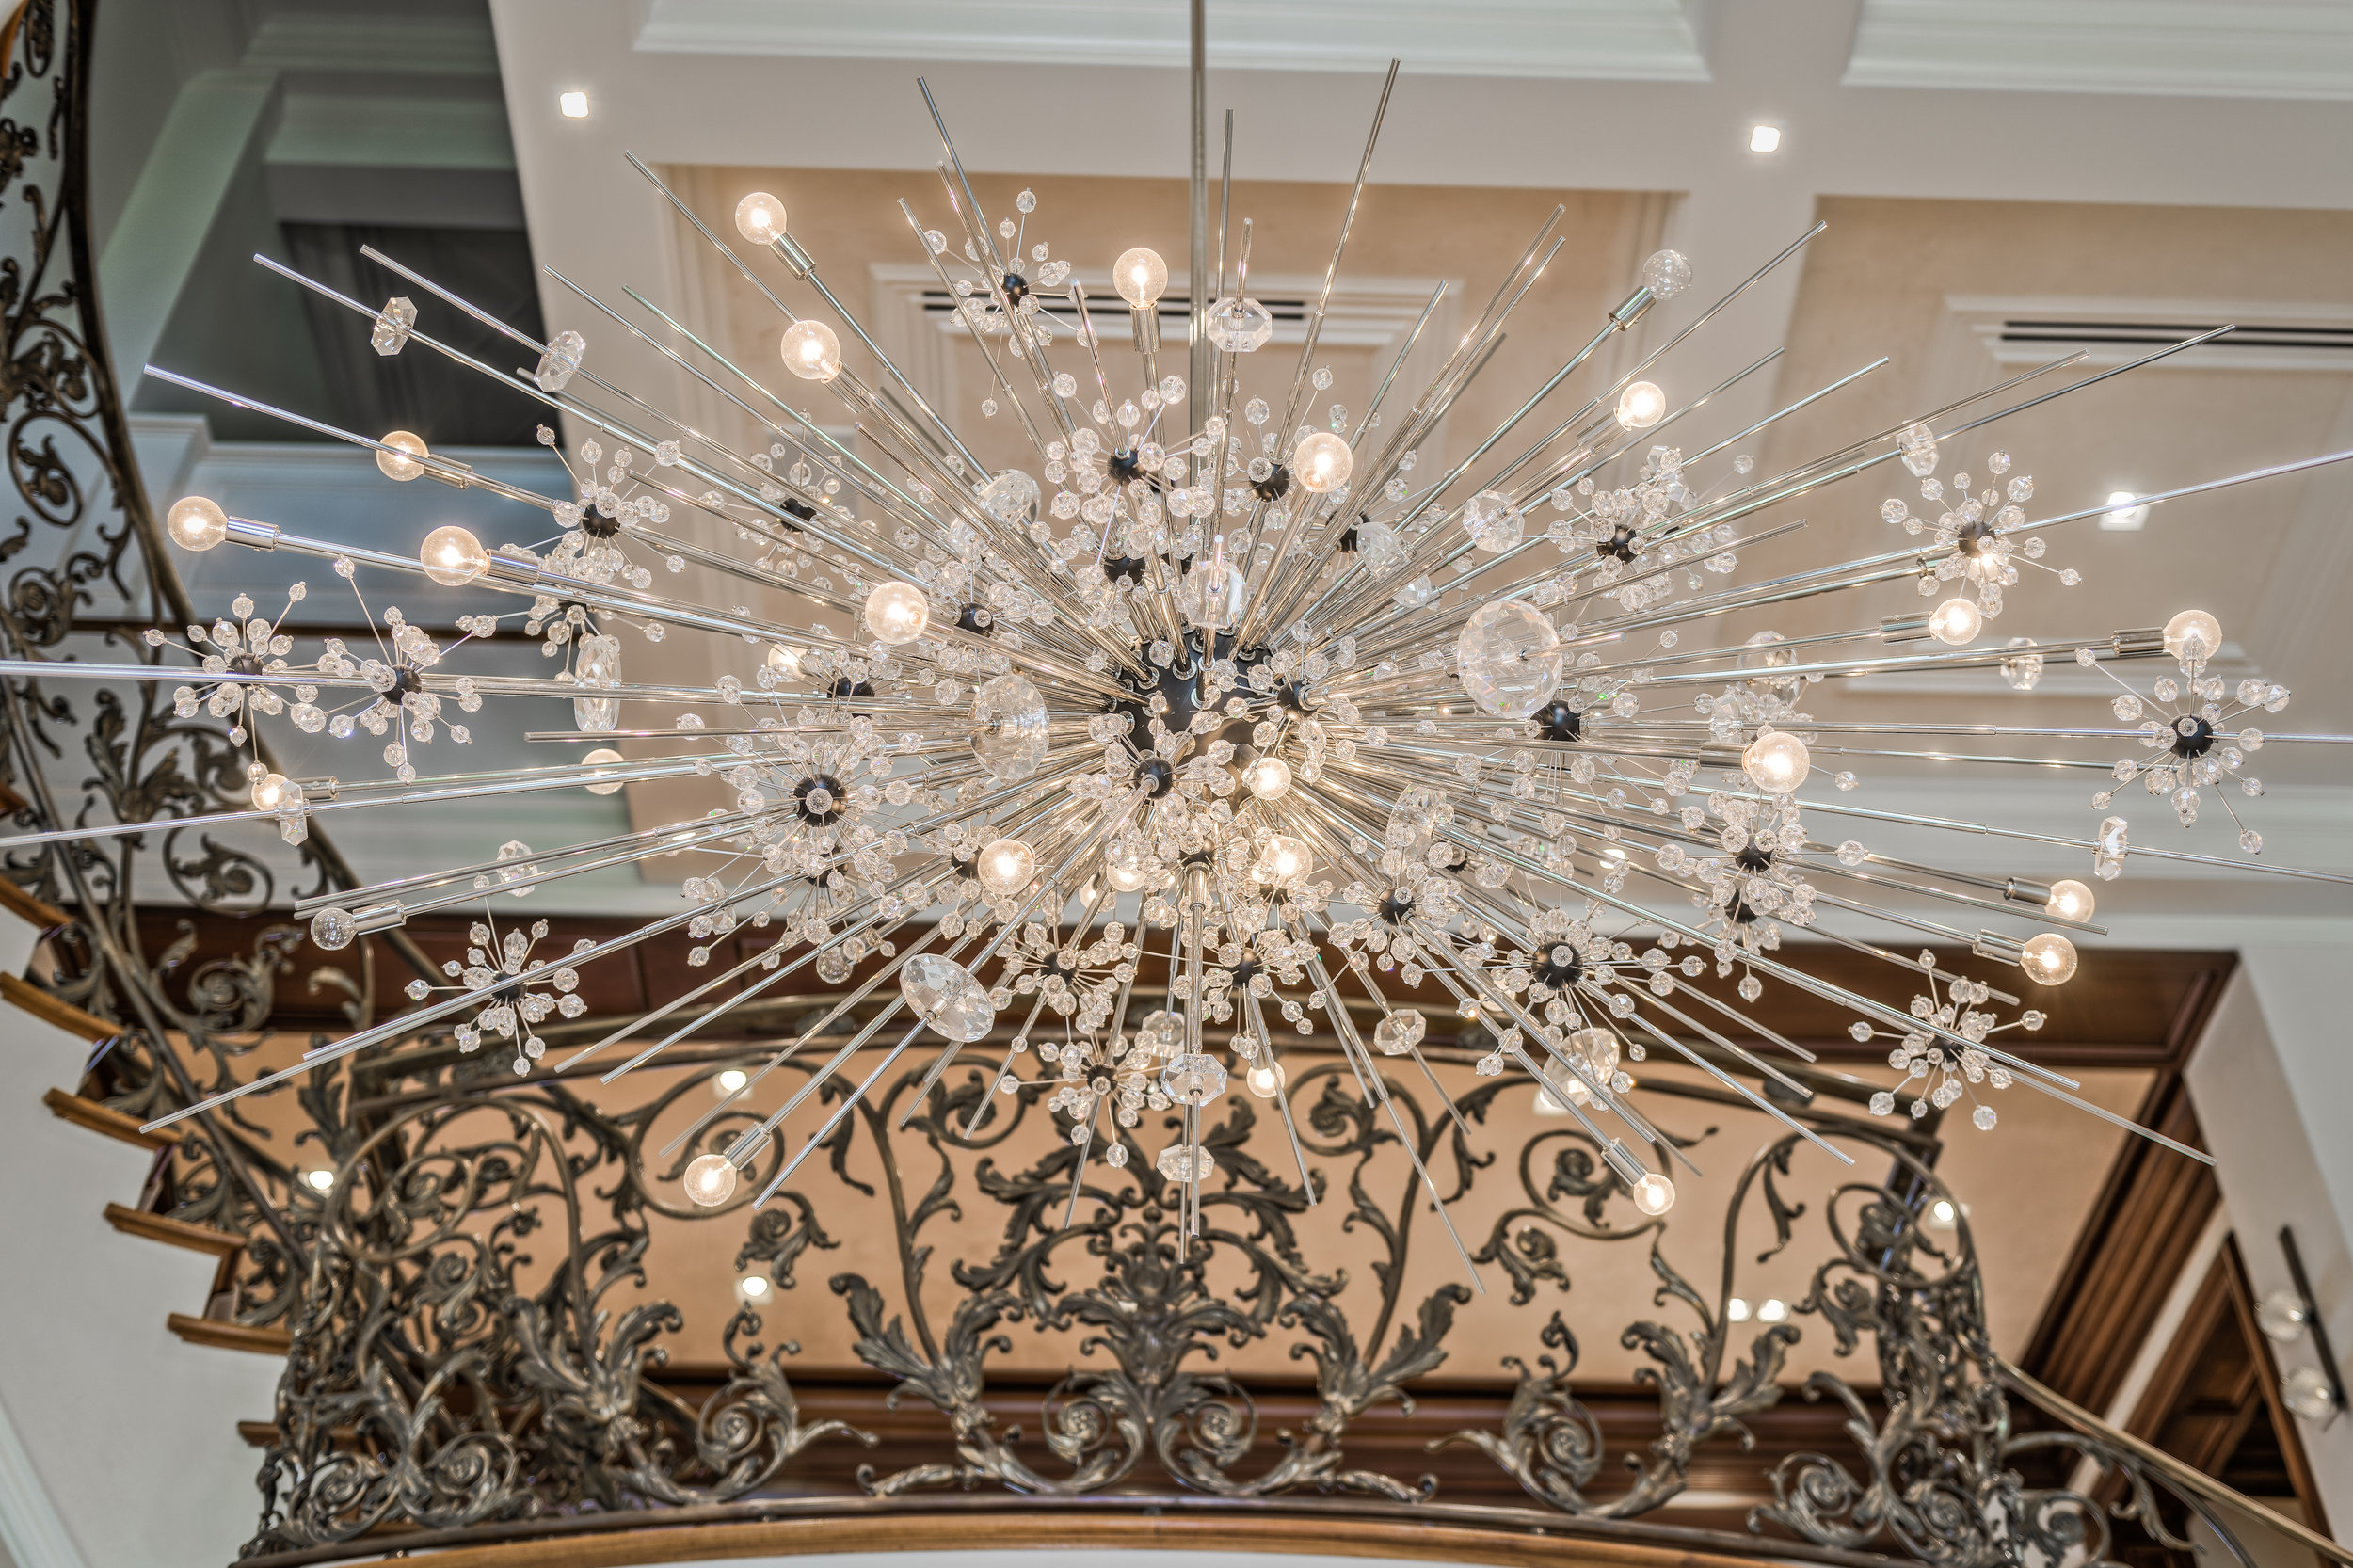 Private Beachfront Estate Grand Foyer - Detail Iconic Lobmyer Metropolitan Chandelier